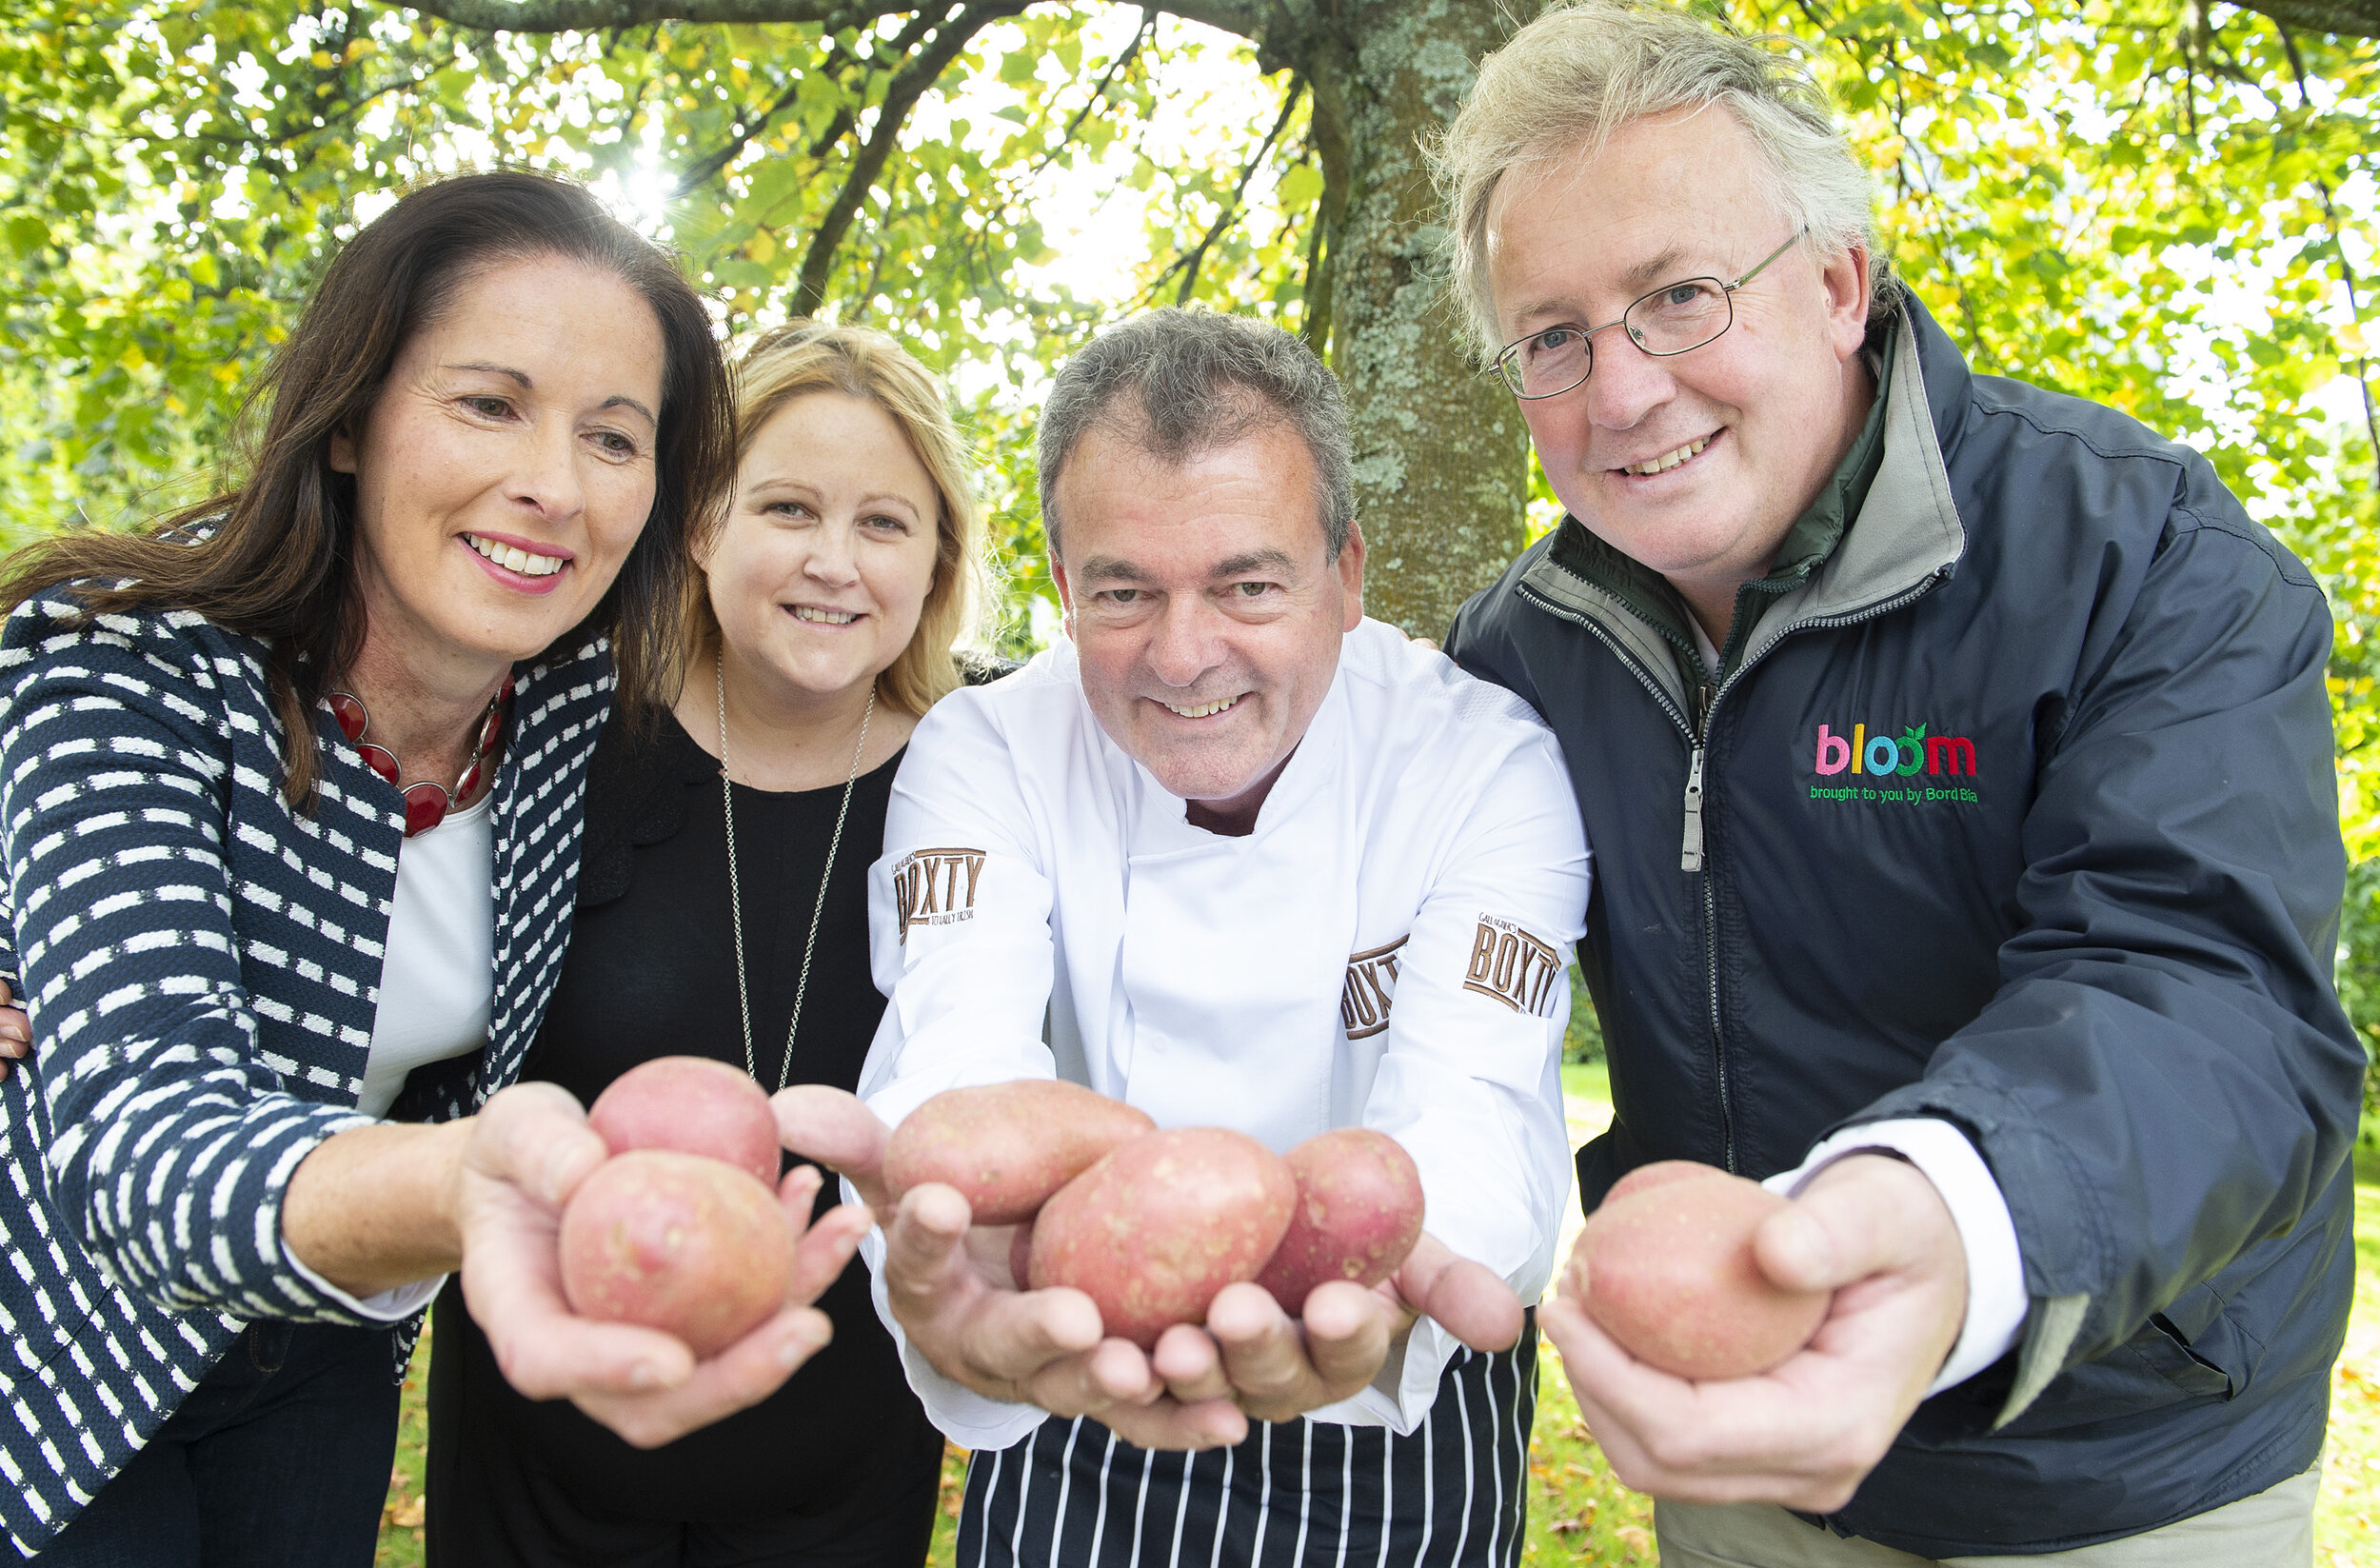 (l-r) Nora Sheehan, Cork-based potato grower, Padraic Og Gallager, proprietor of The Boxty House Templebar, Lorcan Bourke, Fresh produce and potato sector manager, Bord Bia